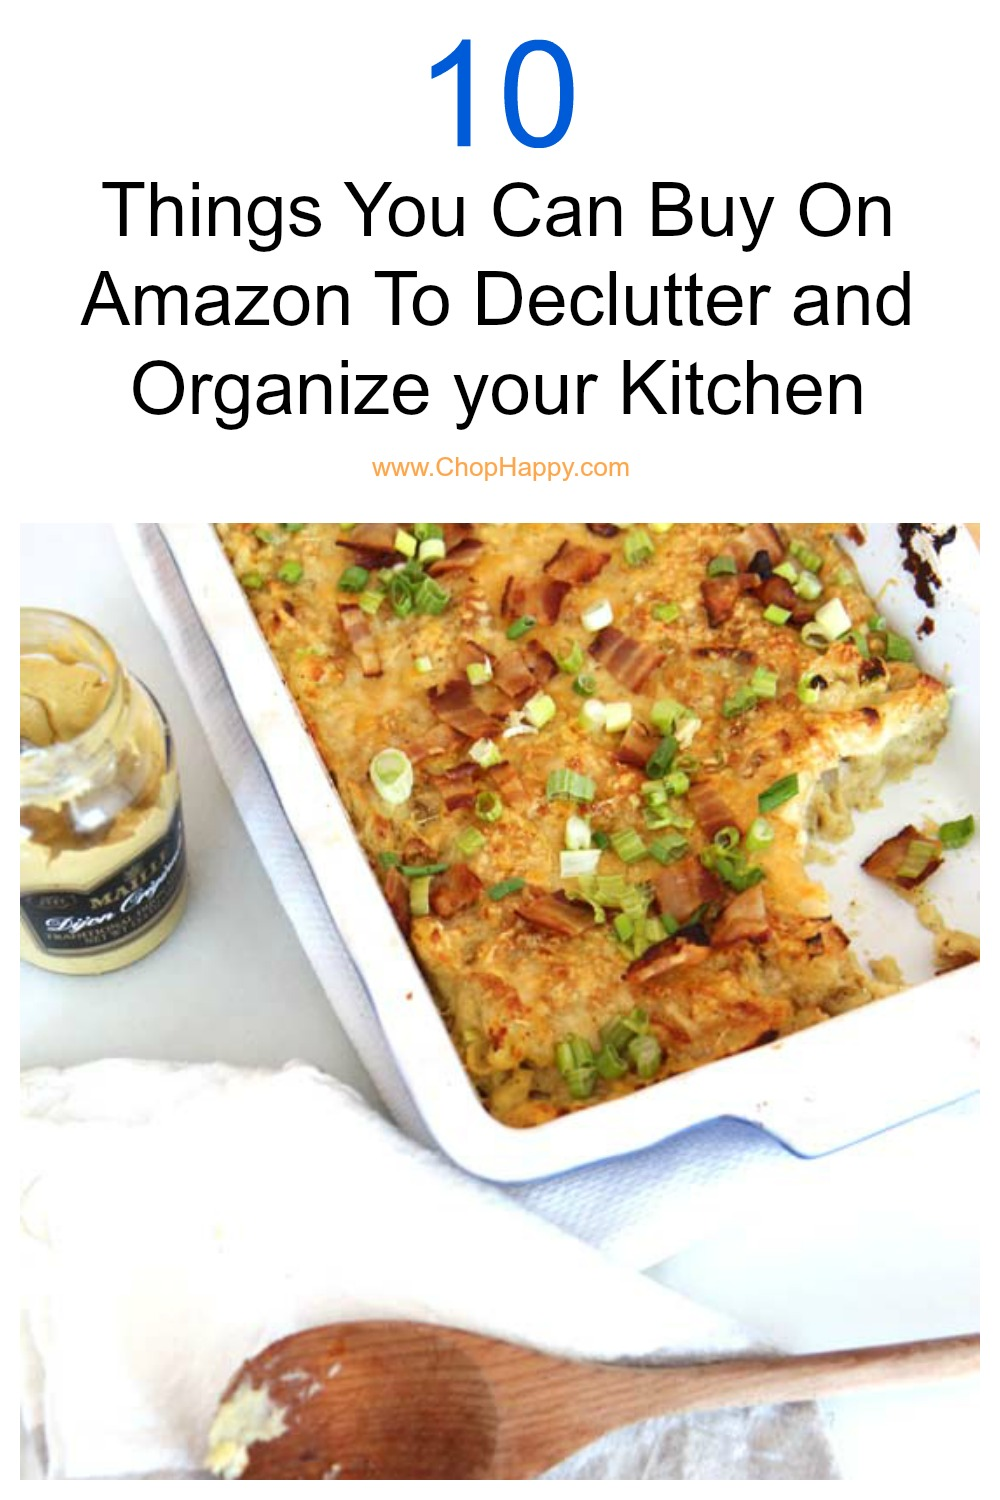 10 Things You Can Buy On Amazon To Declutter and Organize your Kitchen